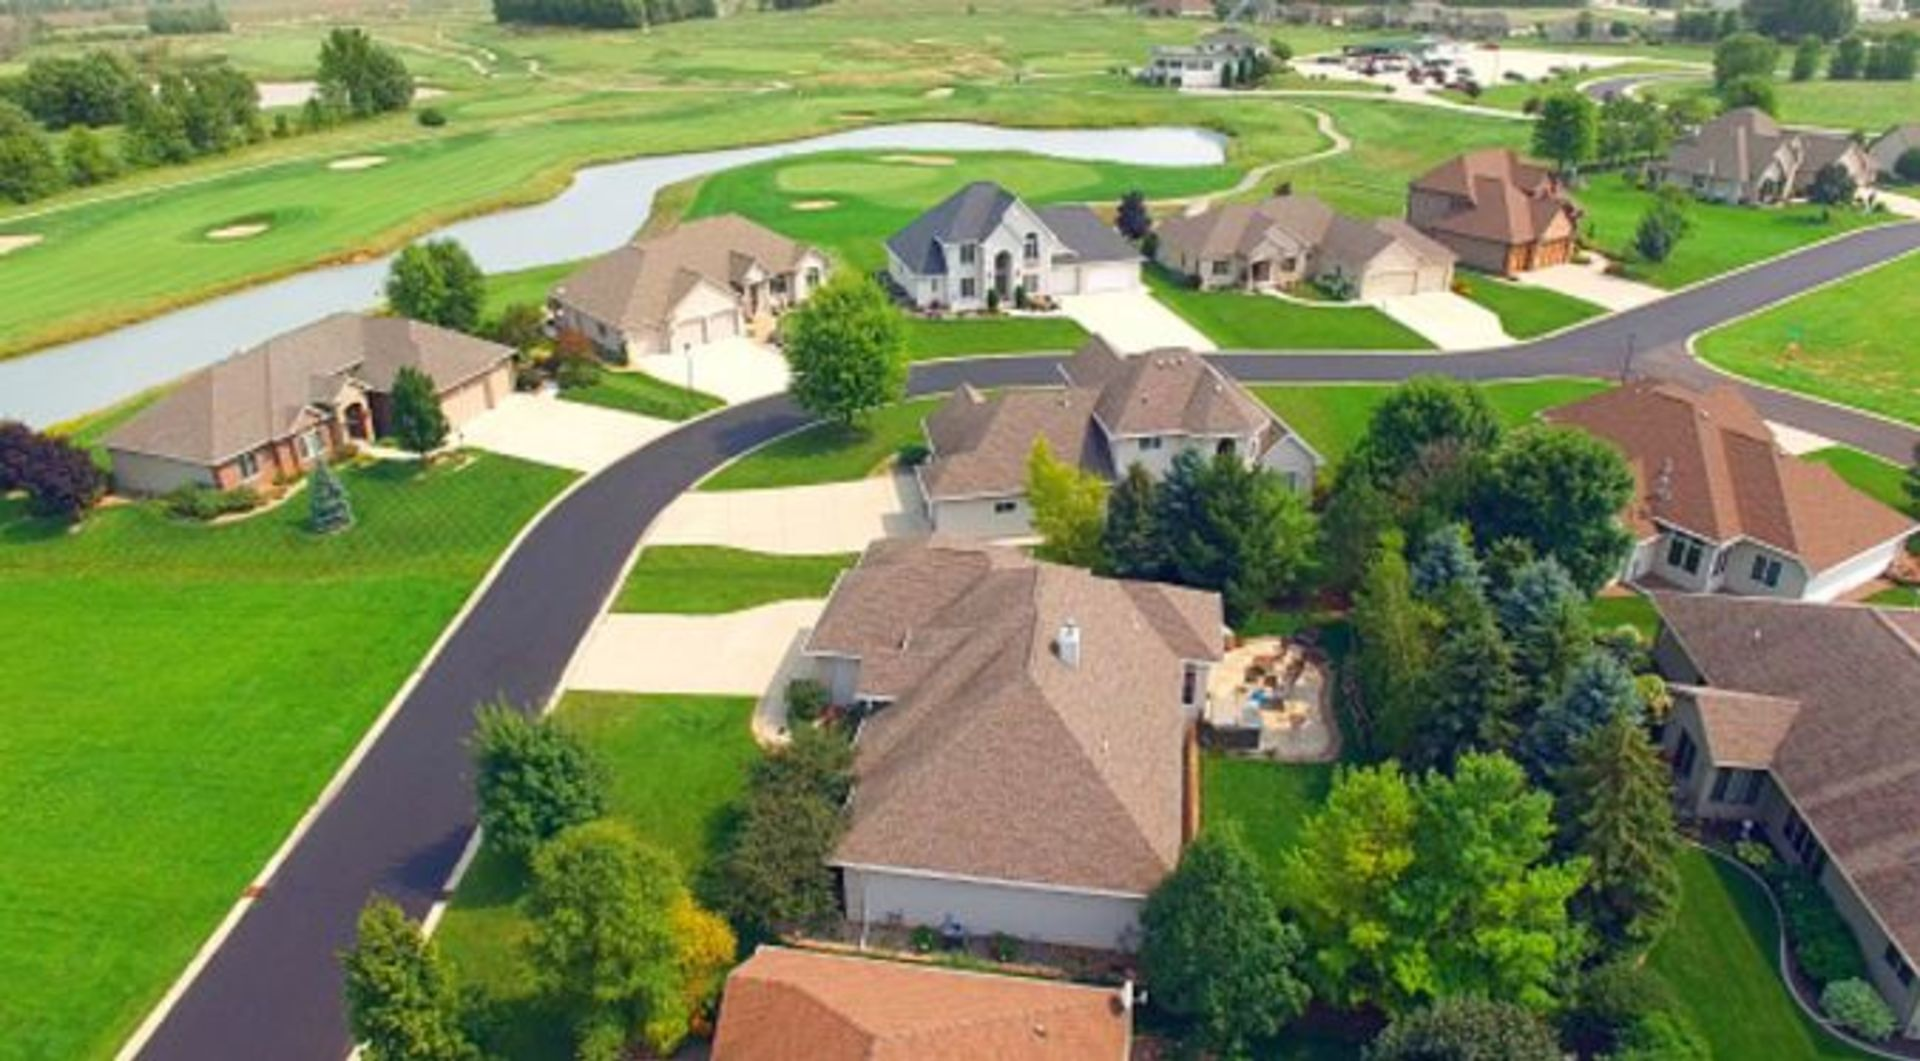 Location, Location, Location: How to Ensure You're Buying a Home in the Right Community